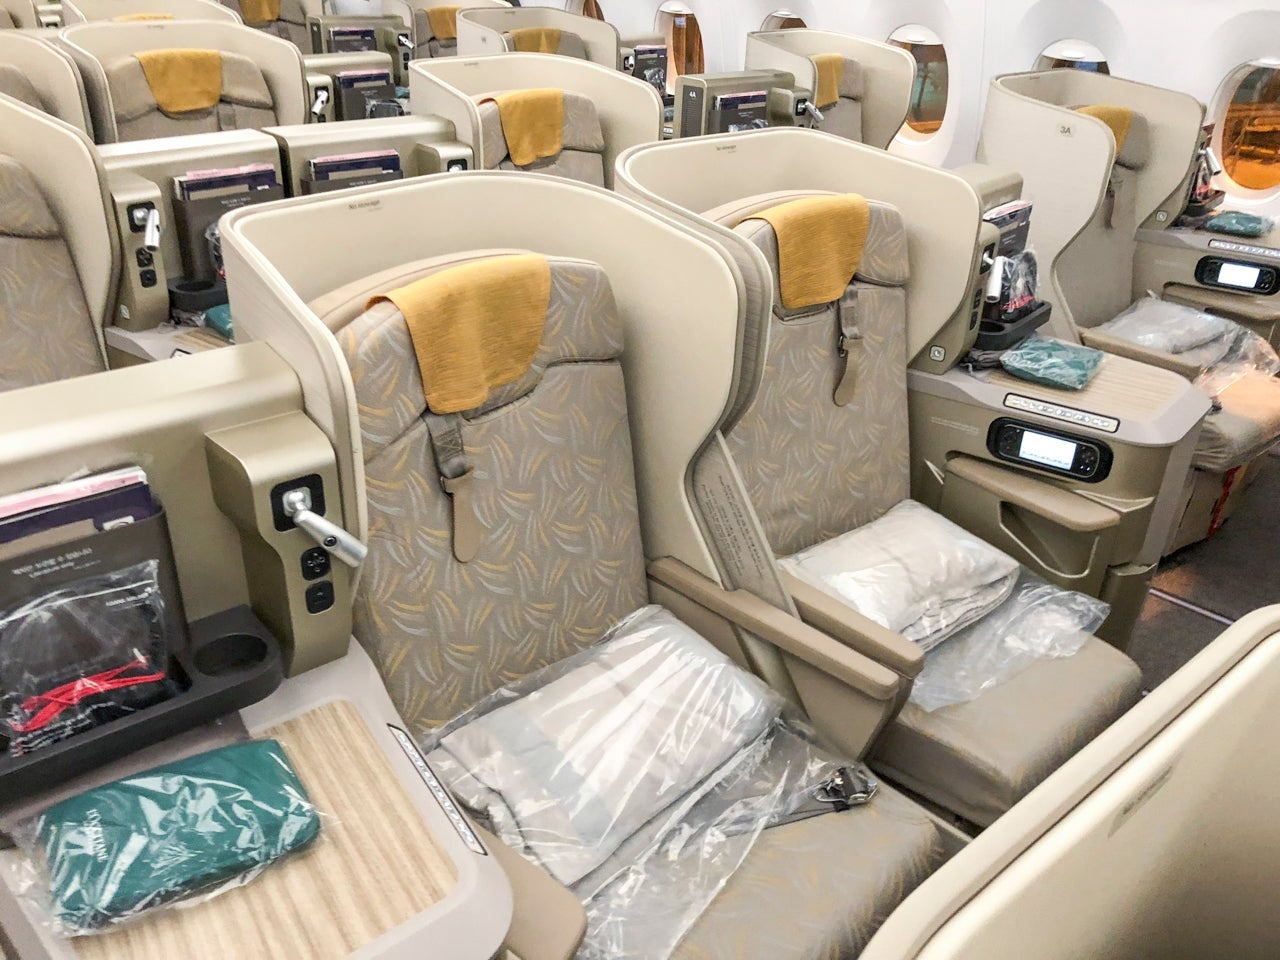 Airlines With The Best Business Class For Families